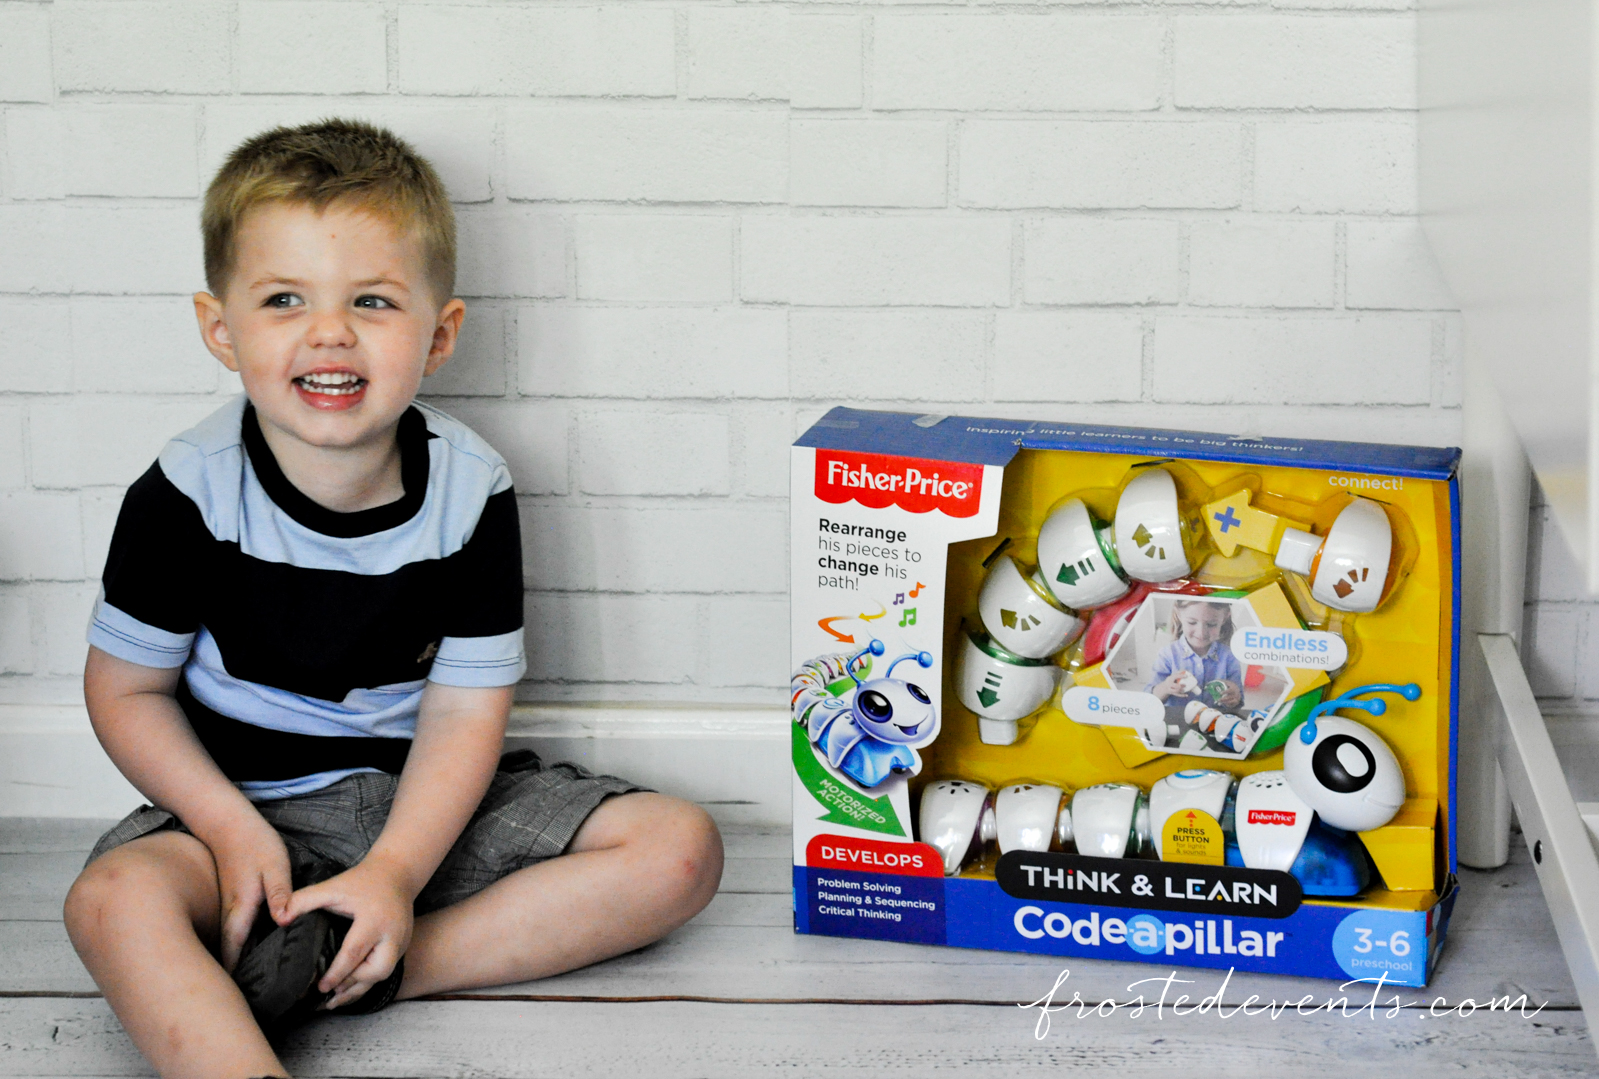 Best Stem Toys For Kids And Toddlers : Educational toys for toddlers fisher price codeapillar